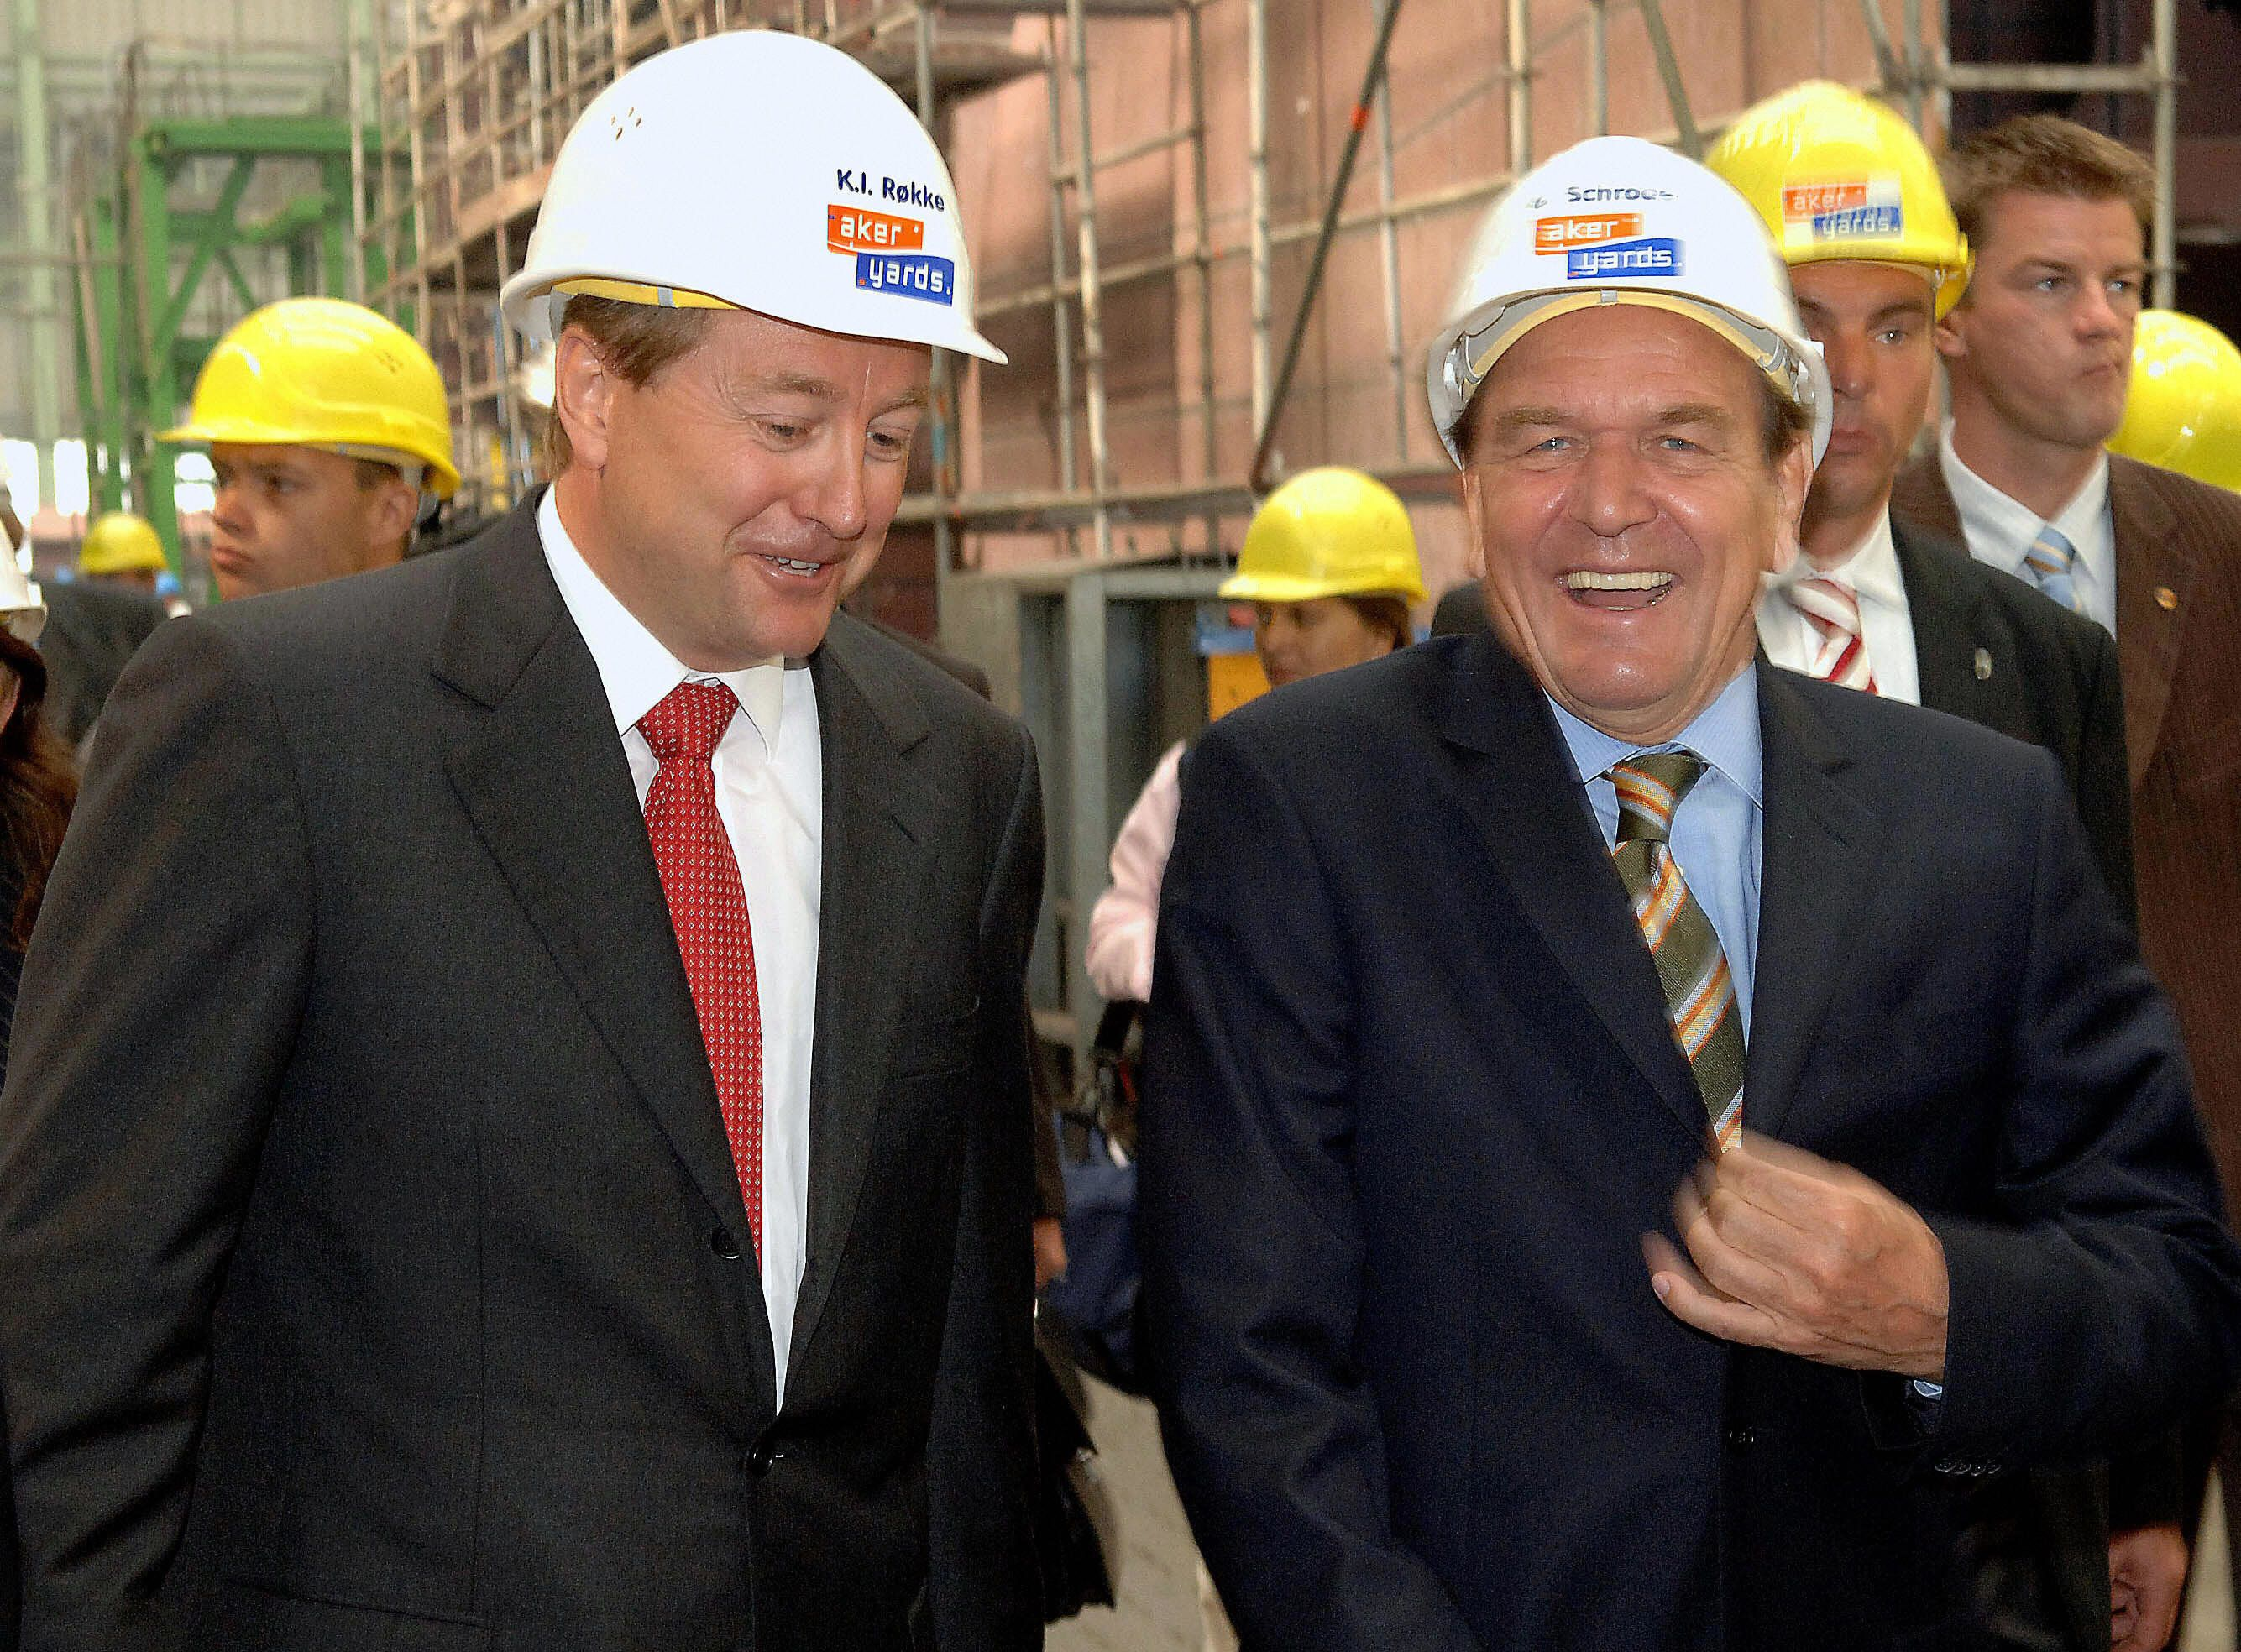 WISMAR, Germany:  German Chancellor Gerhard Schroeder (R) is accompanied by Aker ASA chairman, Norwegian Kjell Inge Rokke (L) during his visit at the company's site on 22 August 2005 in Wismar, northern Germany. Schroeder is on election campaign tour for his Social Democratic SPD party ahead of general elections to take place on 18 September 2005.    AFP PHOTO    POOL/JENS BUETTNER  (Photo credit should read JENS BUETTNER/AFP/Getty Images)